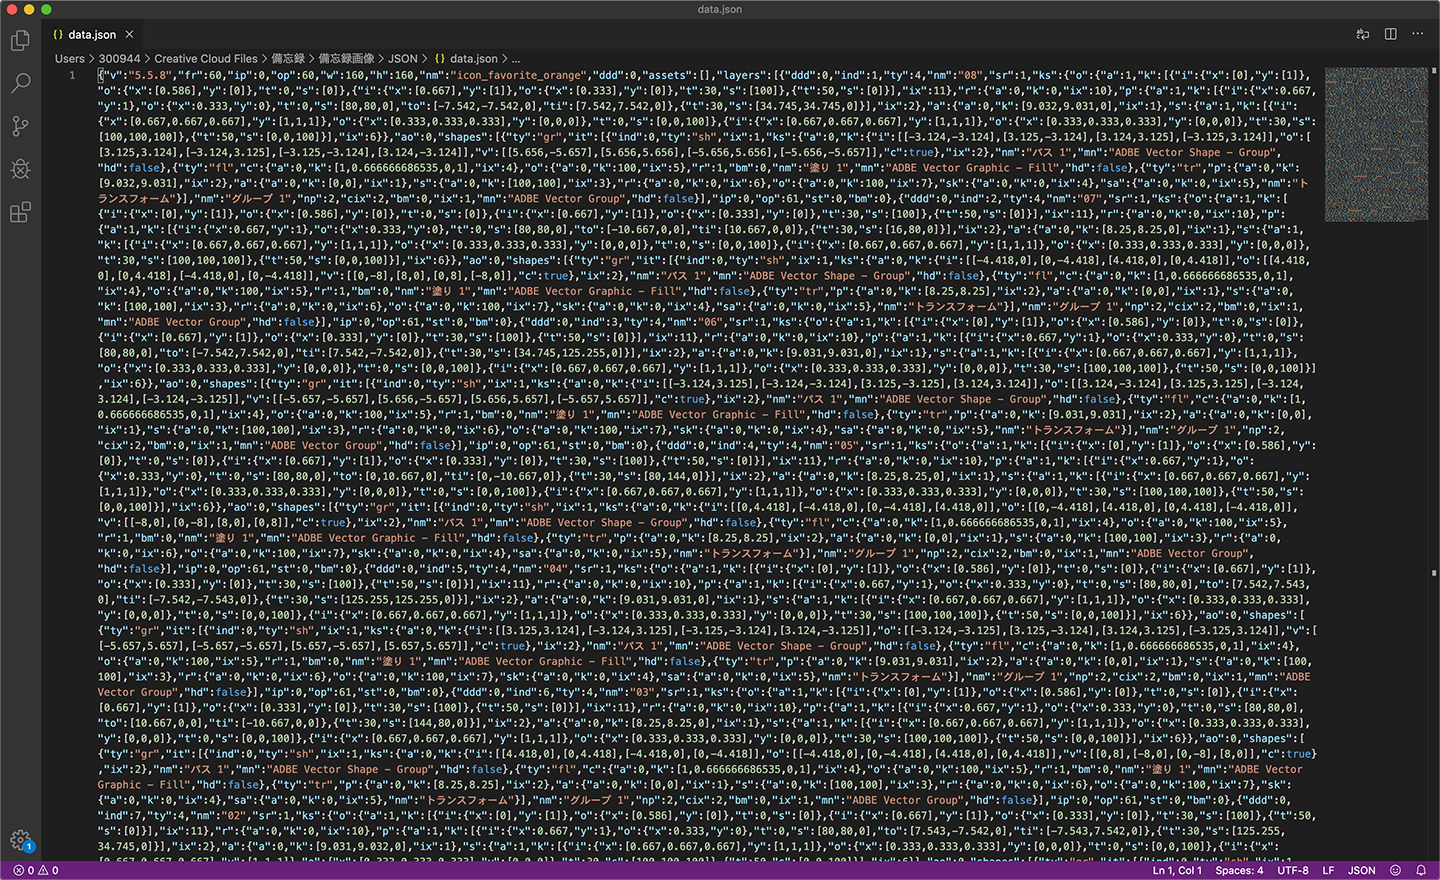 Lottie_to_JSON_09.png